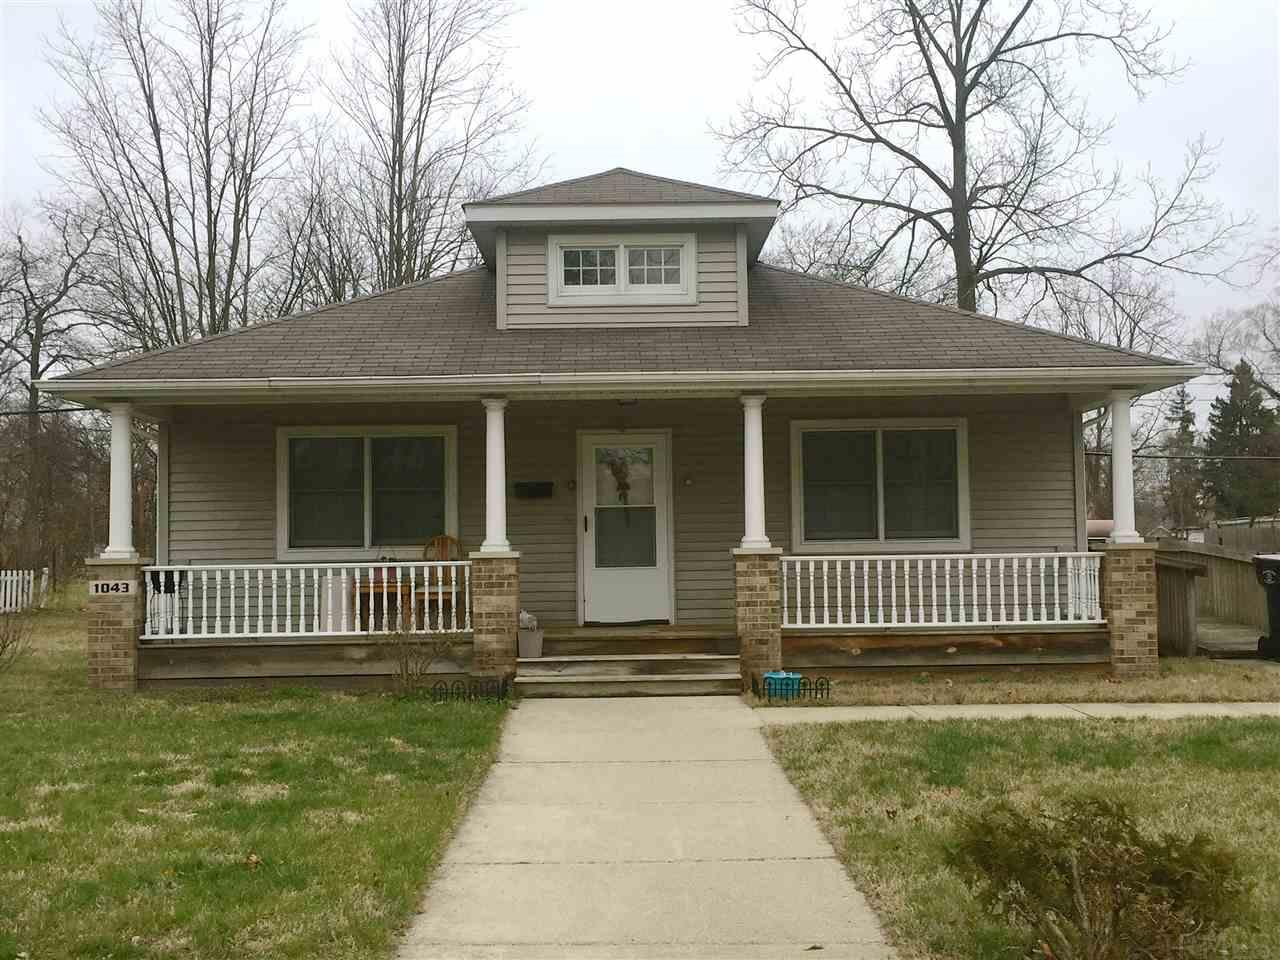 1043 W Lasalle, South Bend, IN 46601